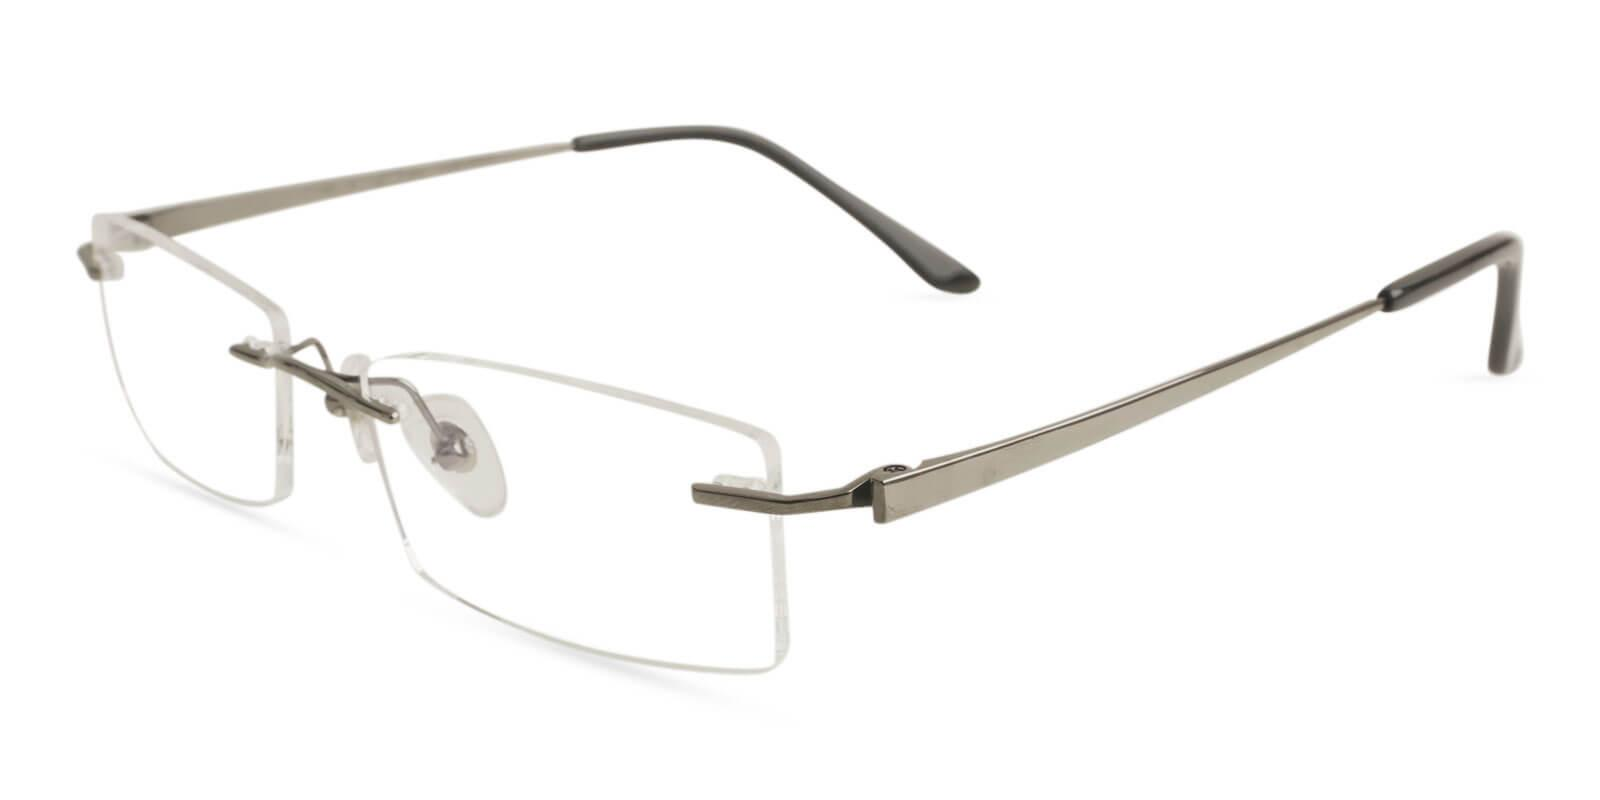 Bens Run Gun Titanium Eyeglasses , NosePads Frames from ABBE Glasses